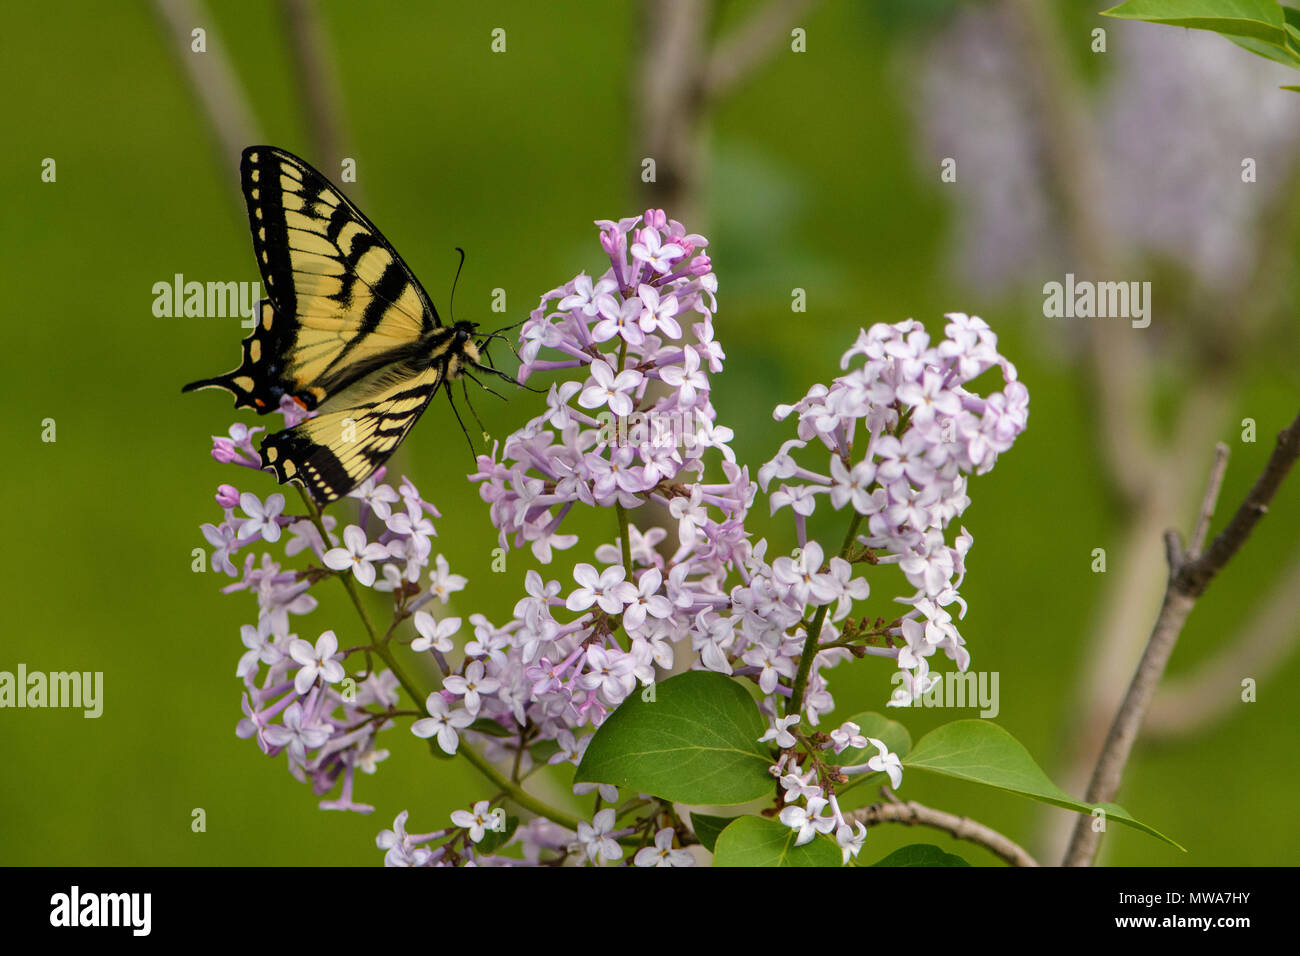 Canadian tiger swallowtail (Papilio canadensis) nectaring lilac flowers, Greater Sudbury, Ontario, Canada - Stock Image